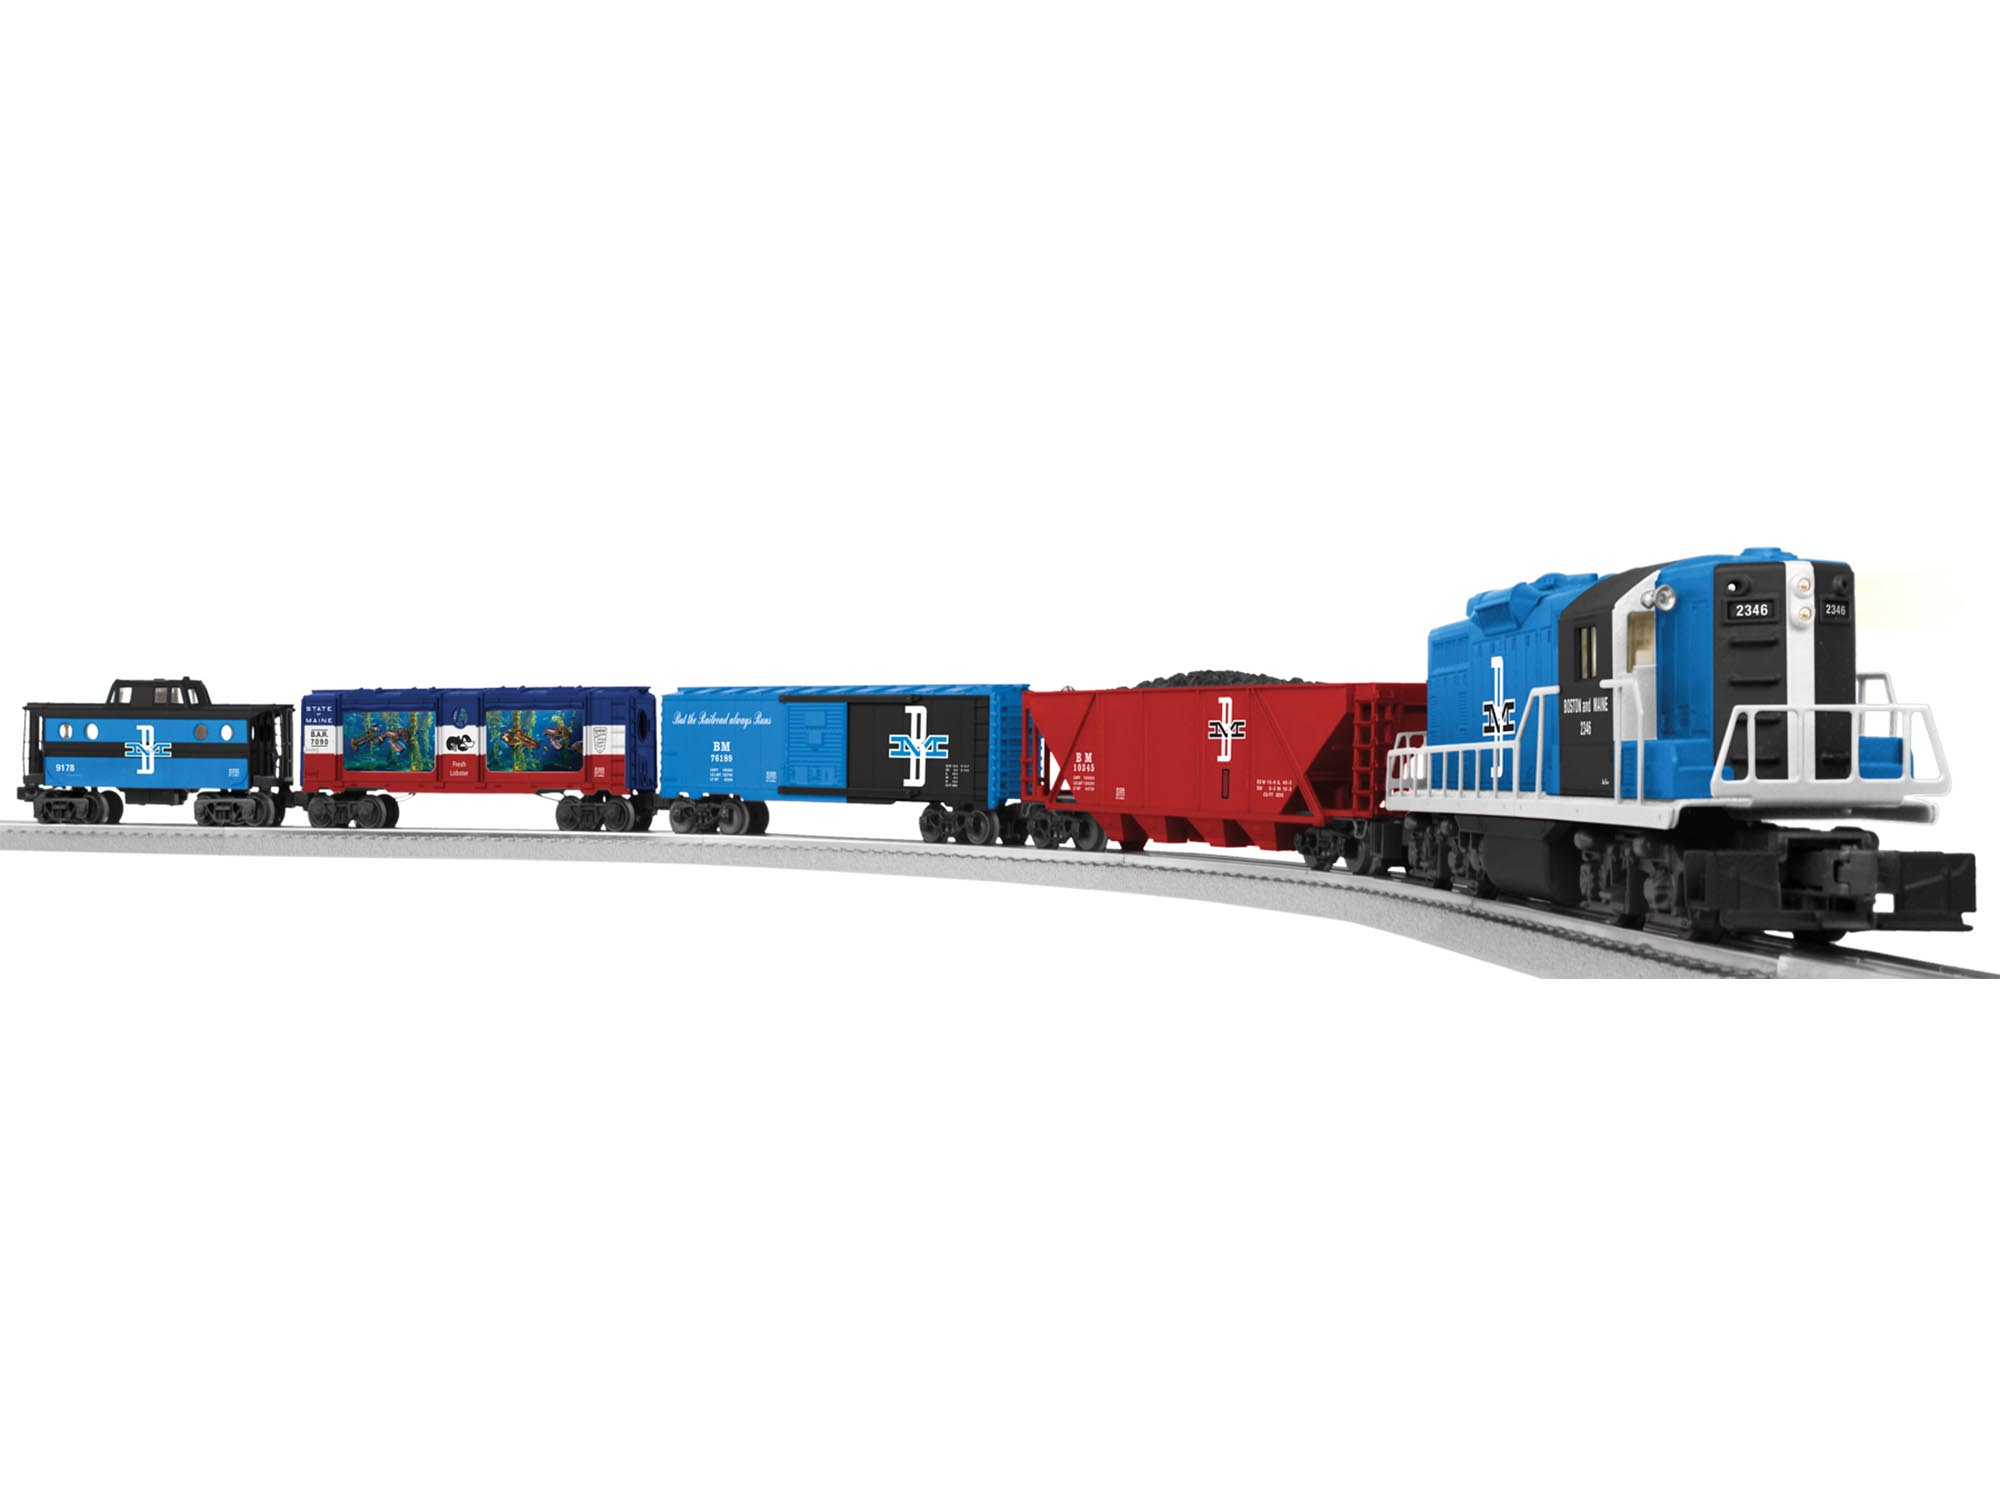 6-81021 BOSTON & MAINE PAUL REVERE GP9 SET (CONV. GP9 #2346)